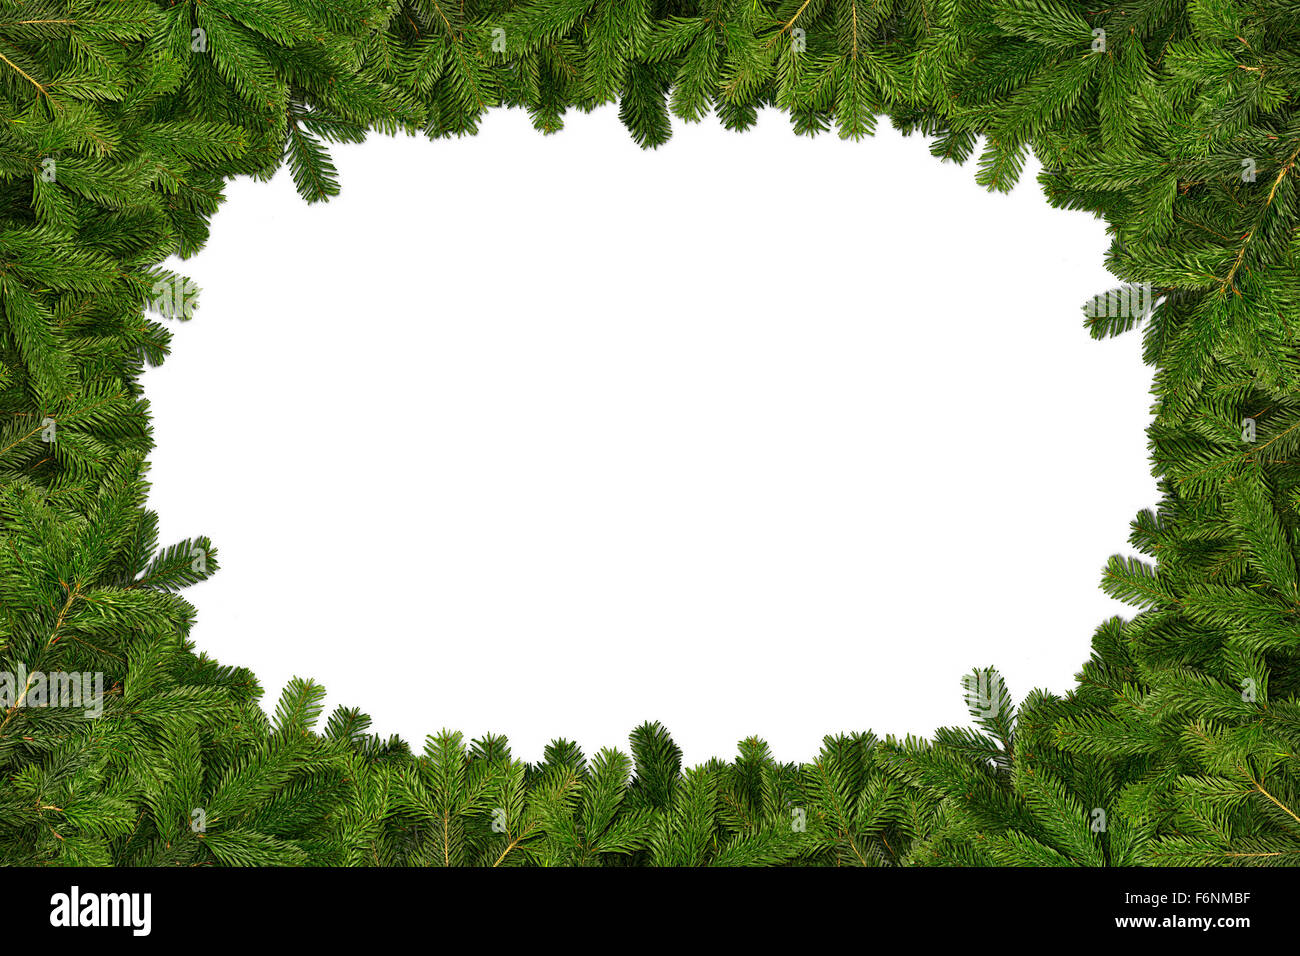 fir branches frame on white background - Stock Image